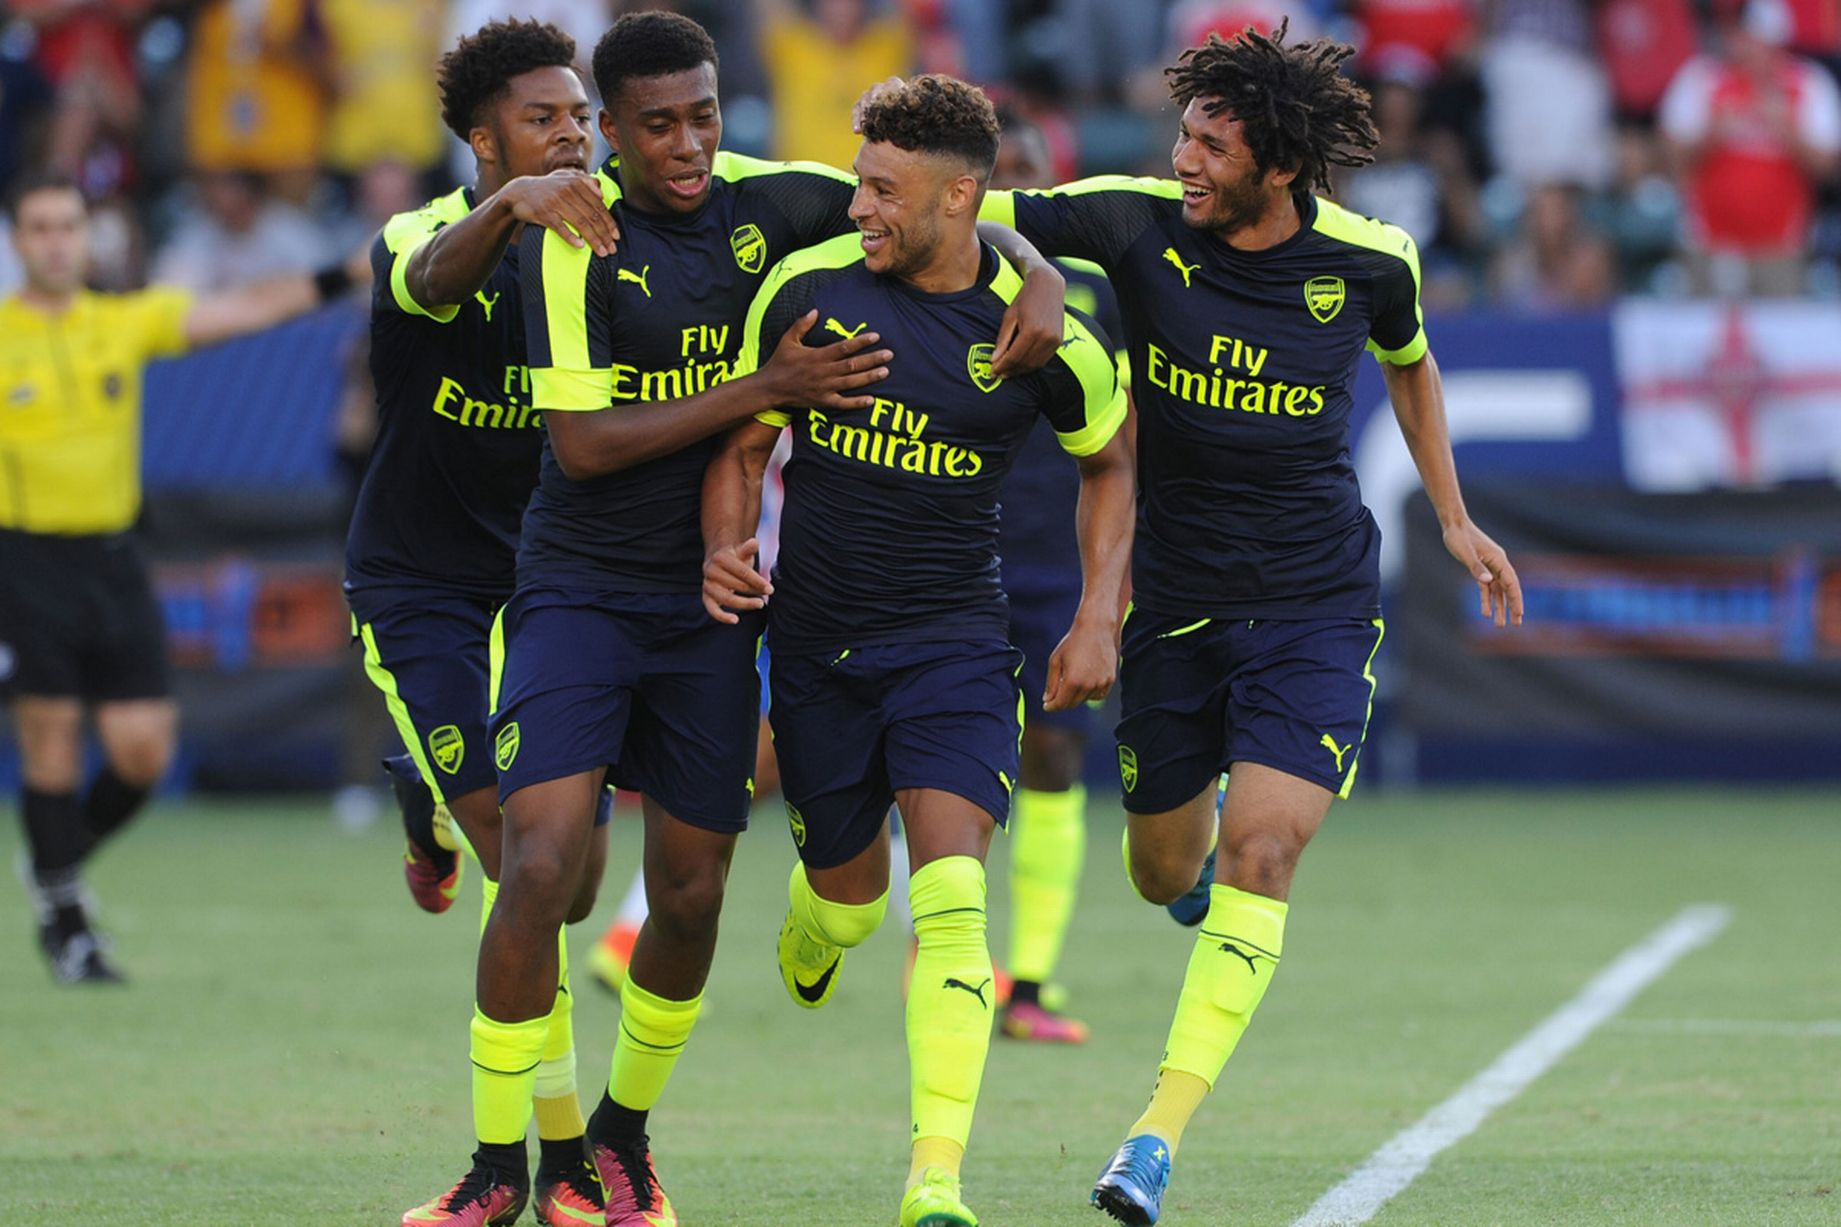 Alex Oxlade-Chamberlain celebrates scoring Arsenal's second goal with Chuba Akpom, Alex Iwobi and Mohamed Elneny